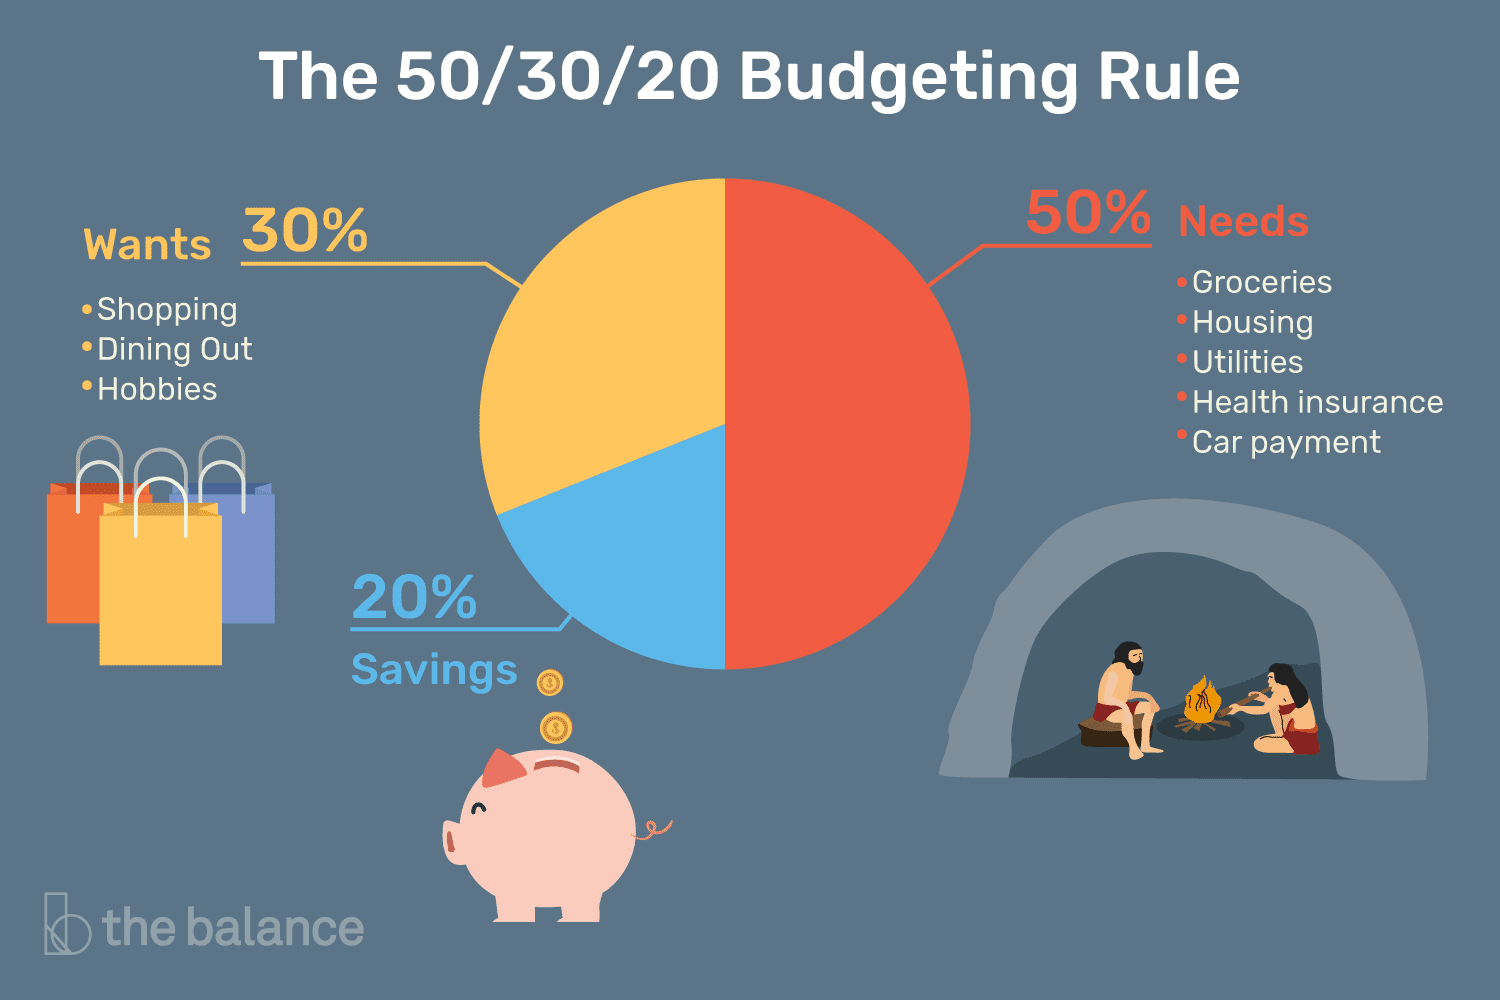 the-50-30-20-rule-of-thumb-453922-final-5b61ec23c9e77c007be919e1